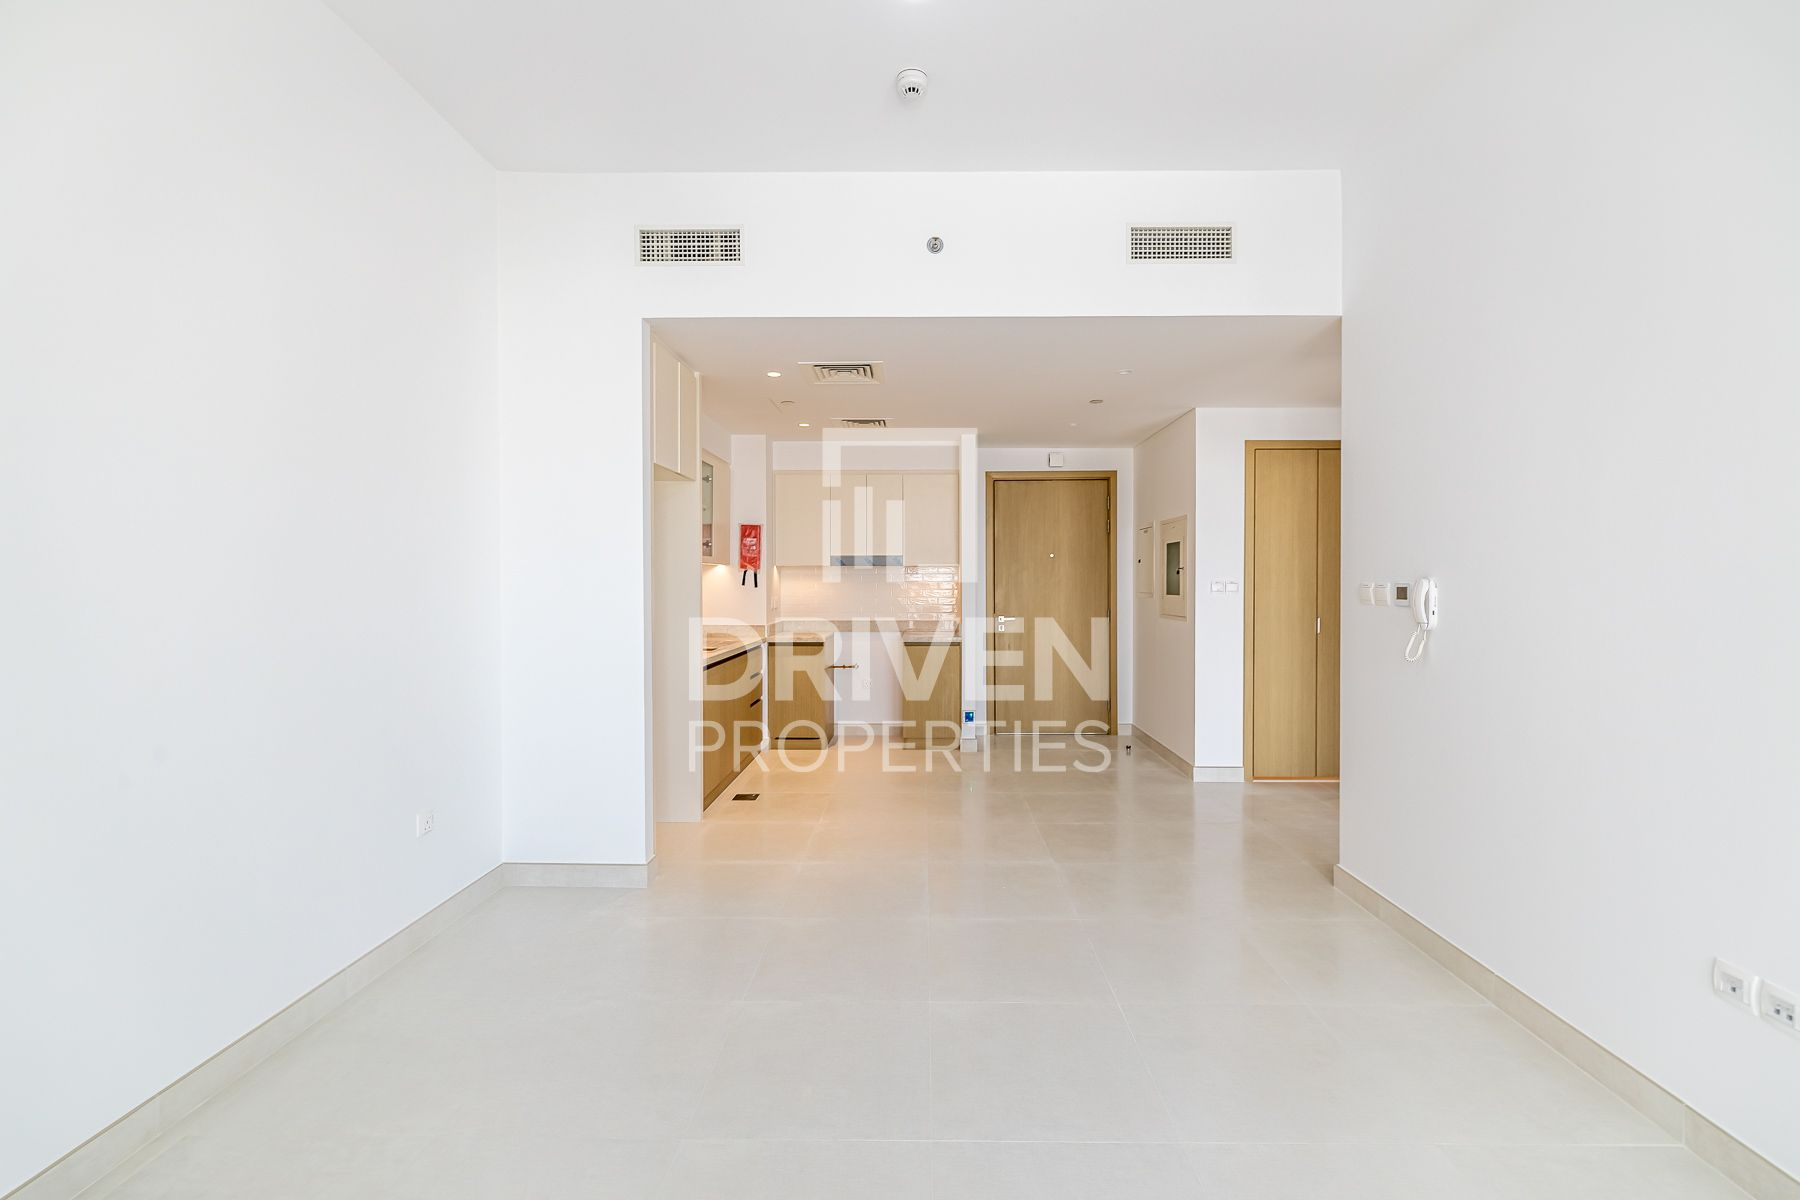 Handed Over | Tower View on Middle Floor